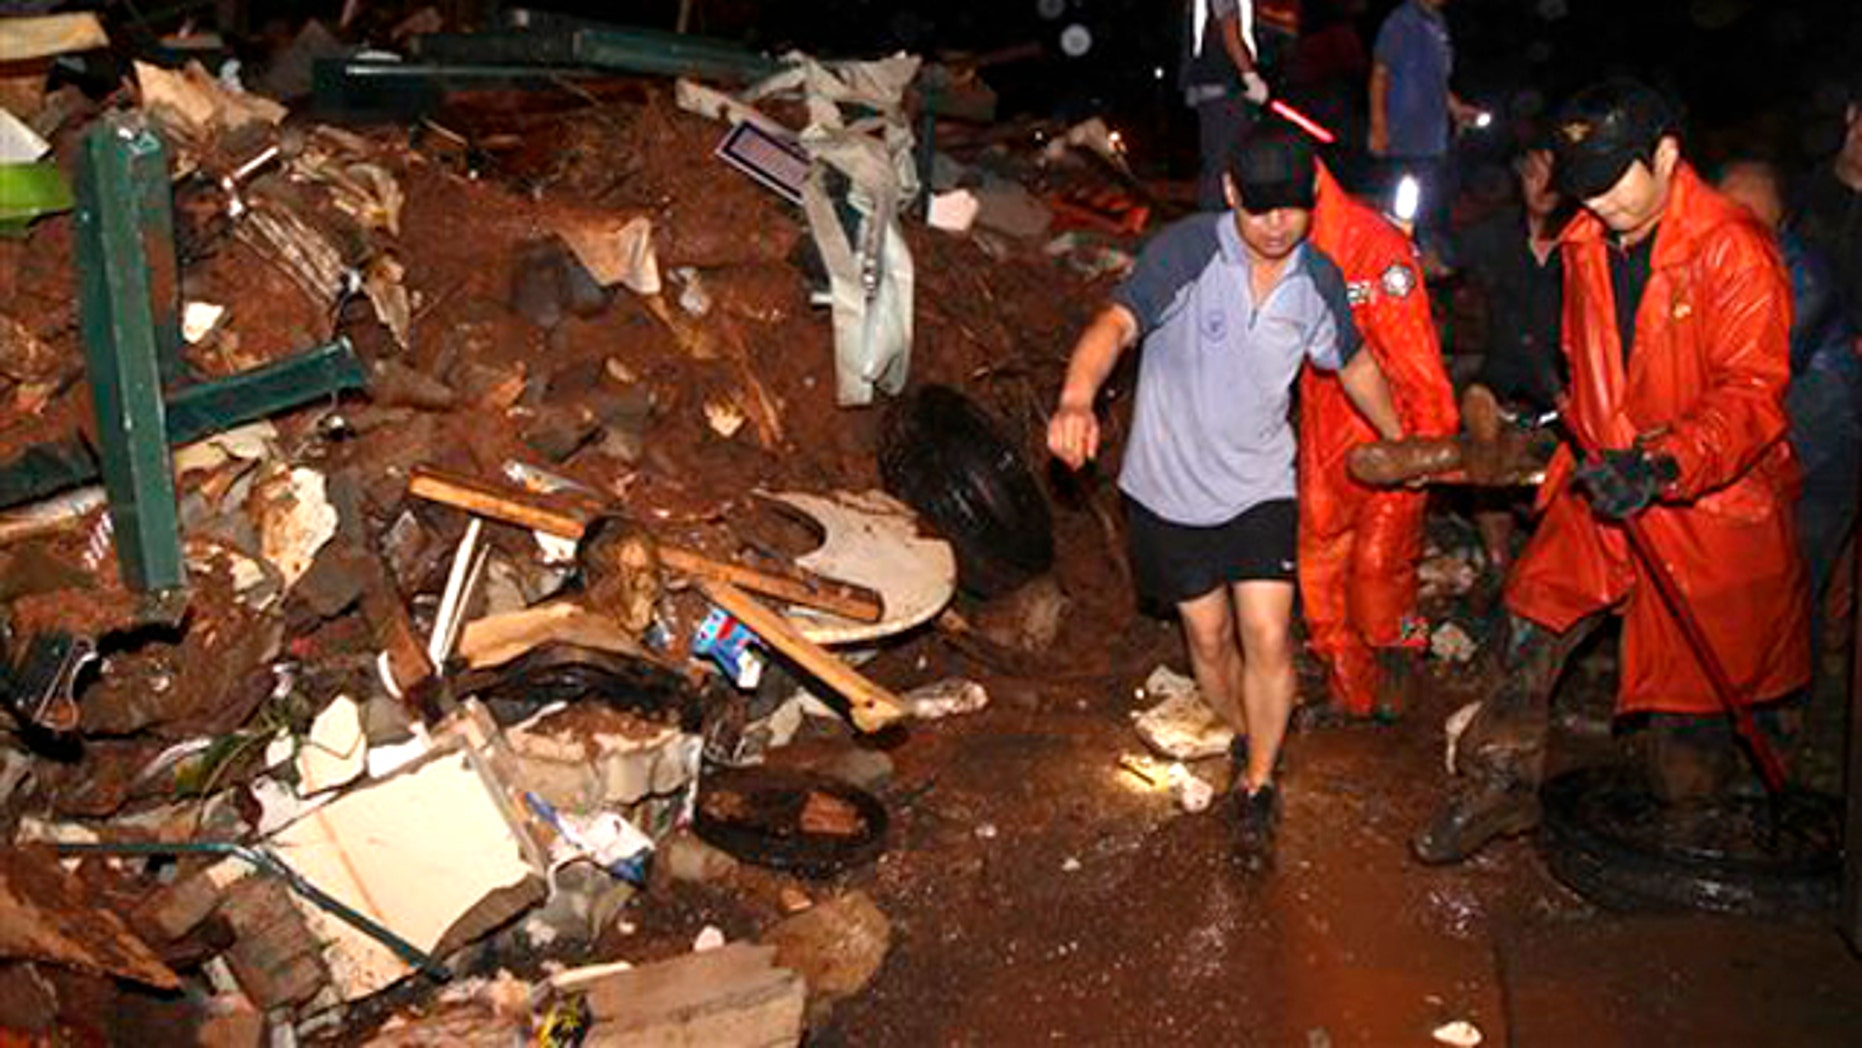 South Korean rescue workers carry a survivor who was rescued from a collapsed house as a midnight landslide caused by torrential rains swept away several houses in Chuncheon, South Korea, Wednesday, July 27, 2011.